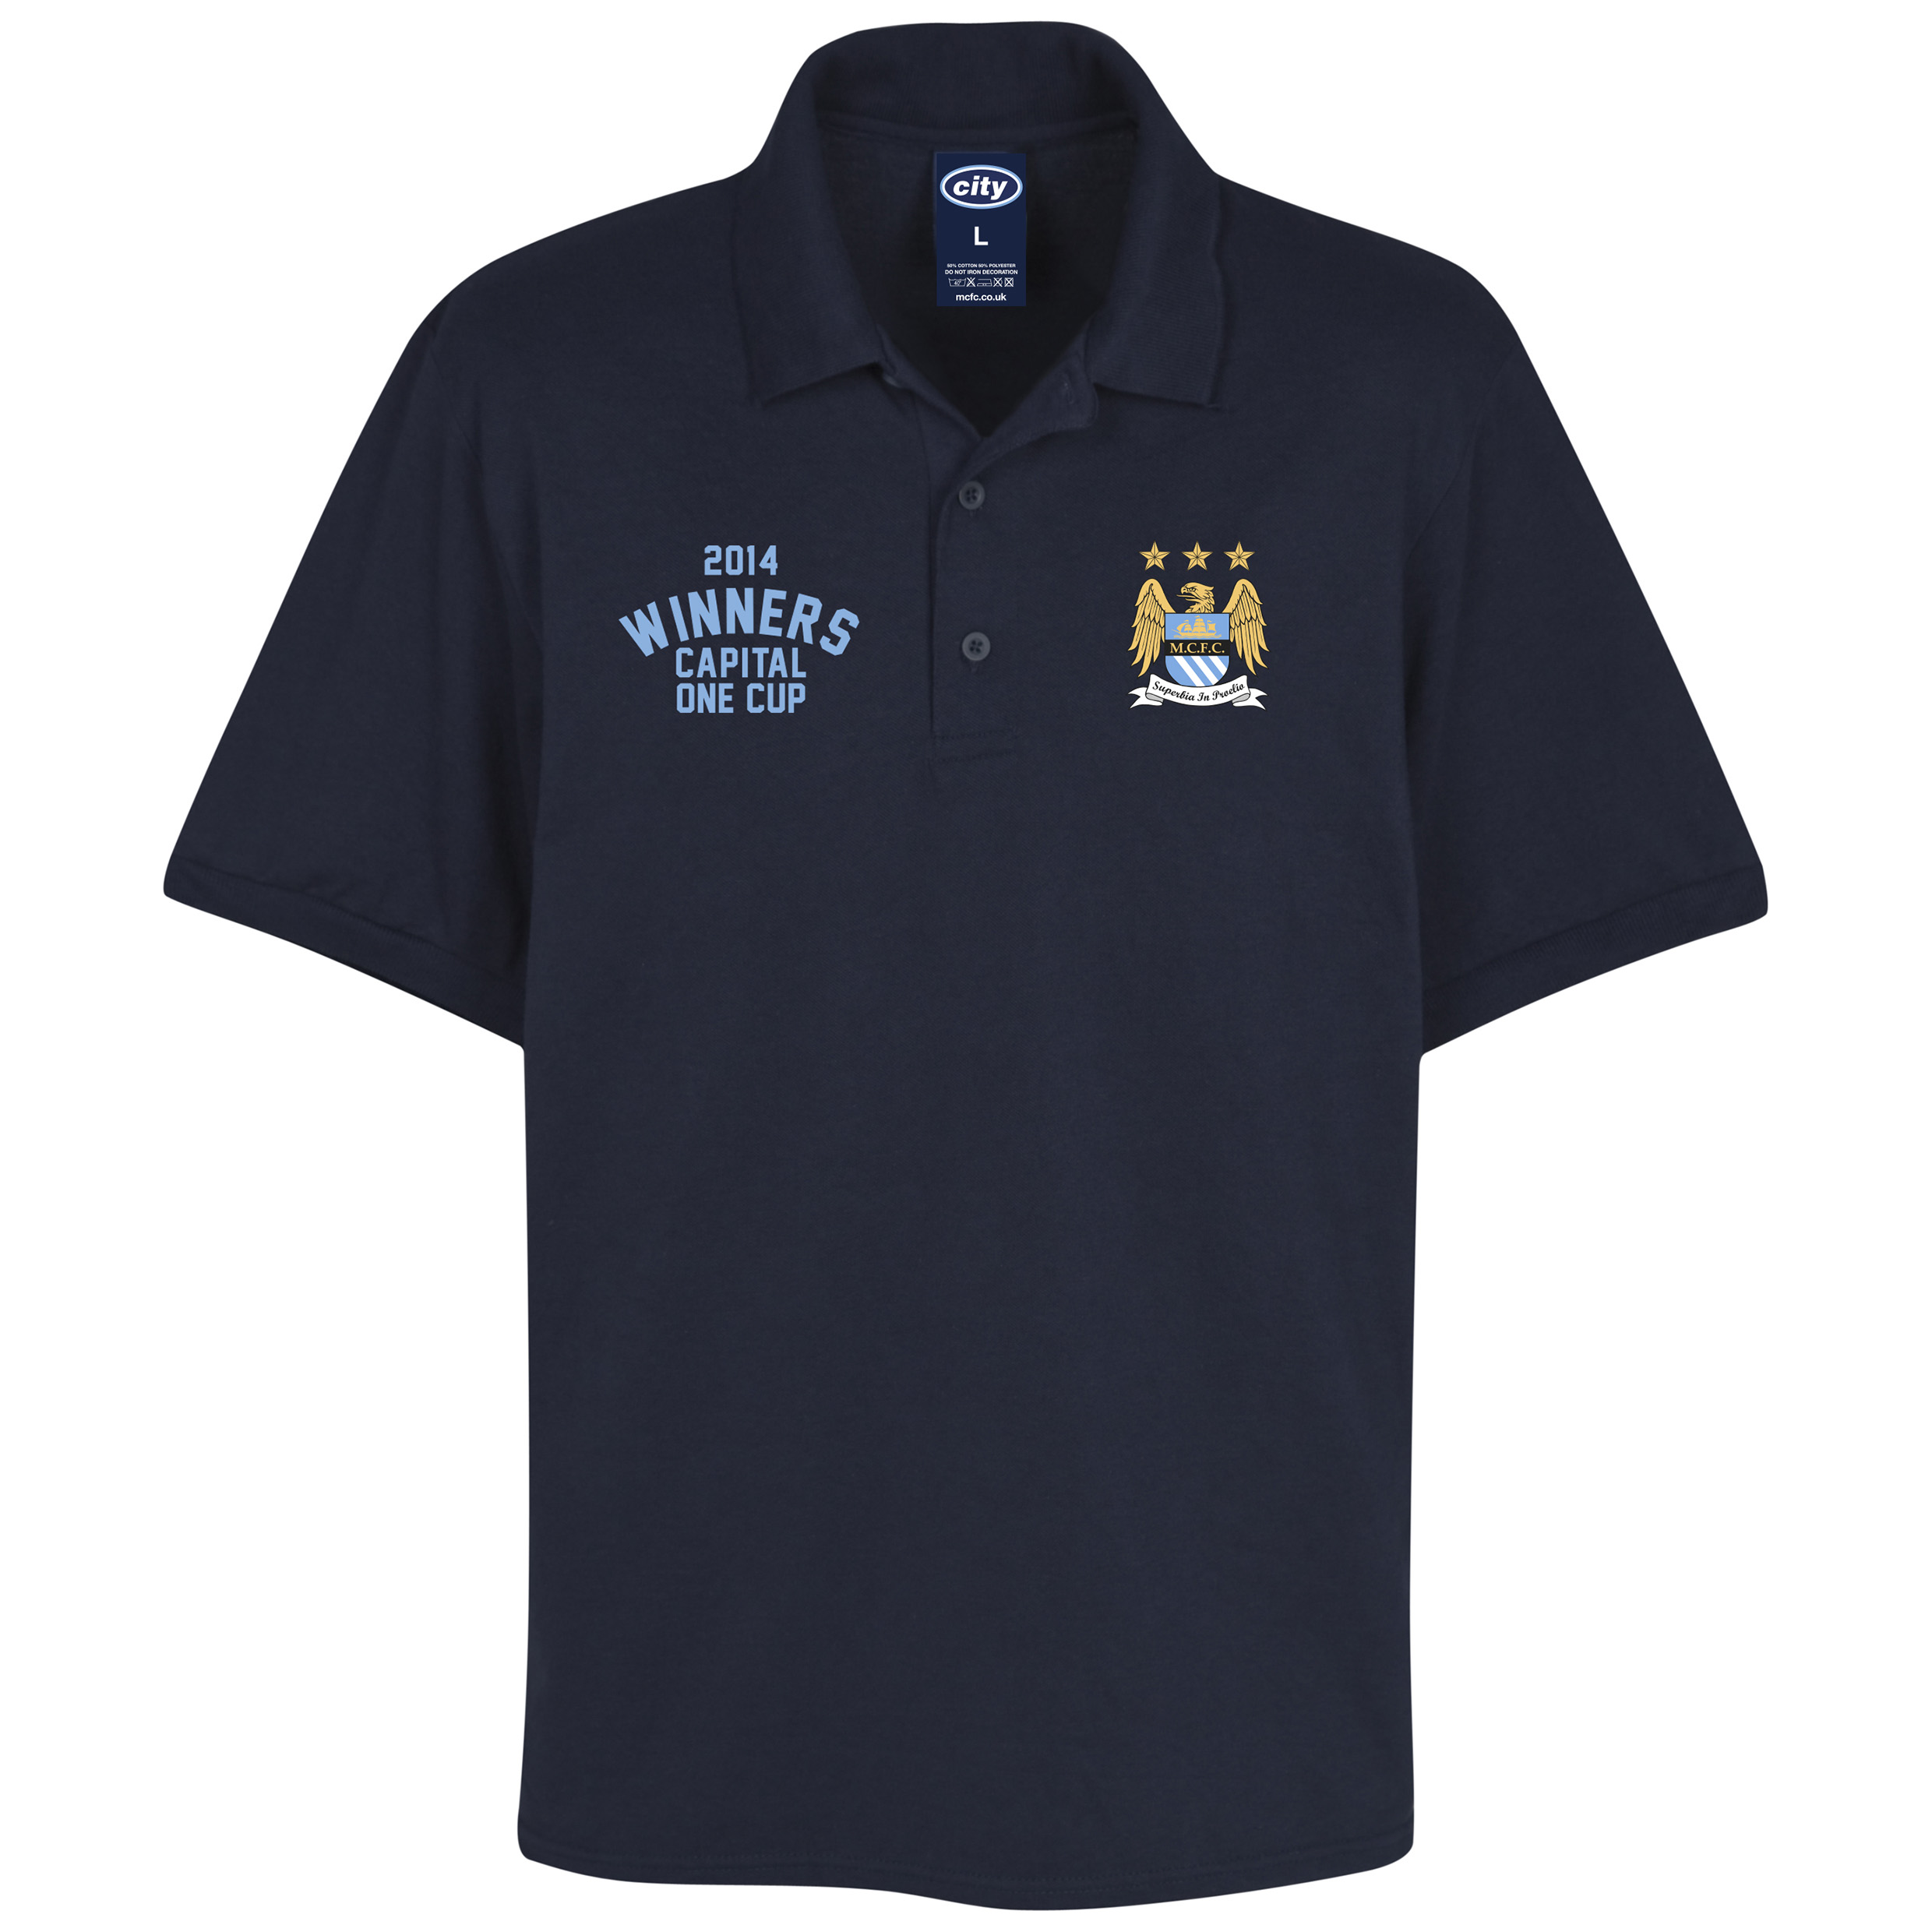 Manchester City Capital One Cup Winners Polo Shirt - Navy - Mens